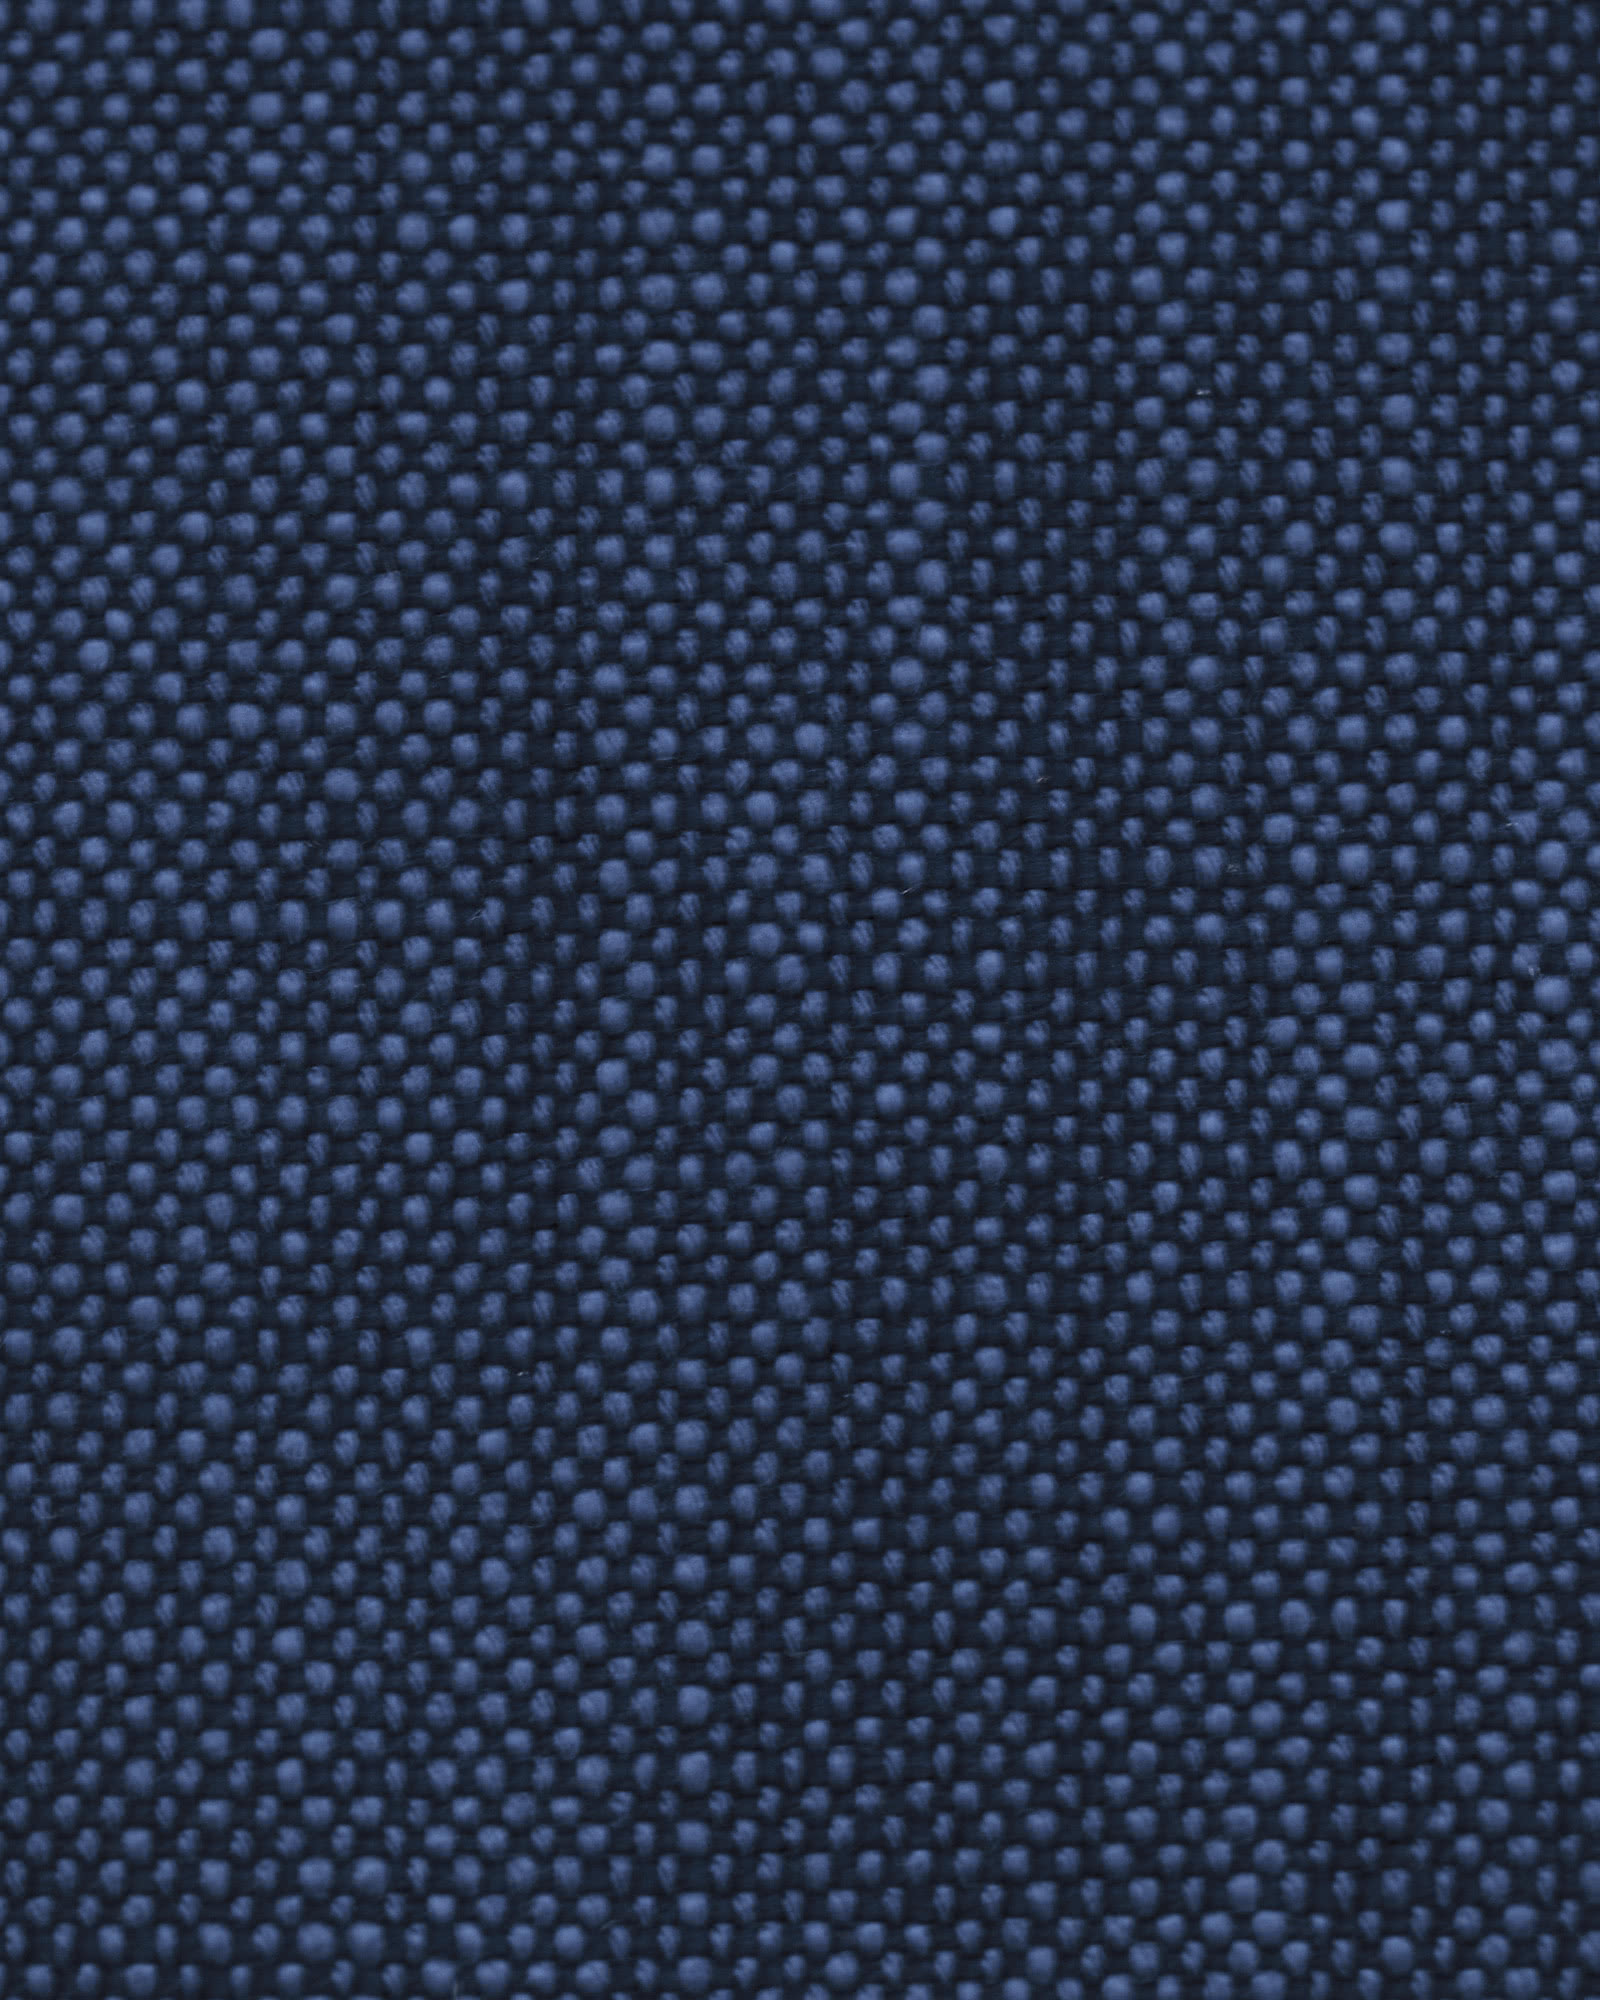 Perennials® Basketweave Fabric, Denim